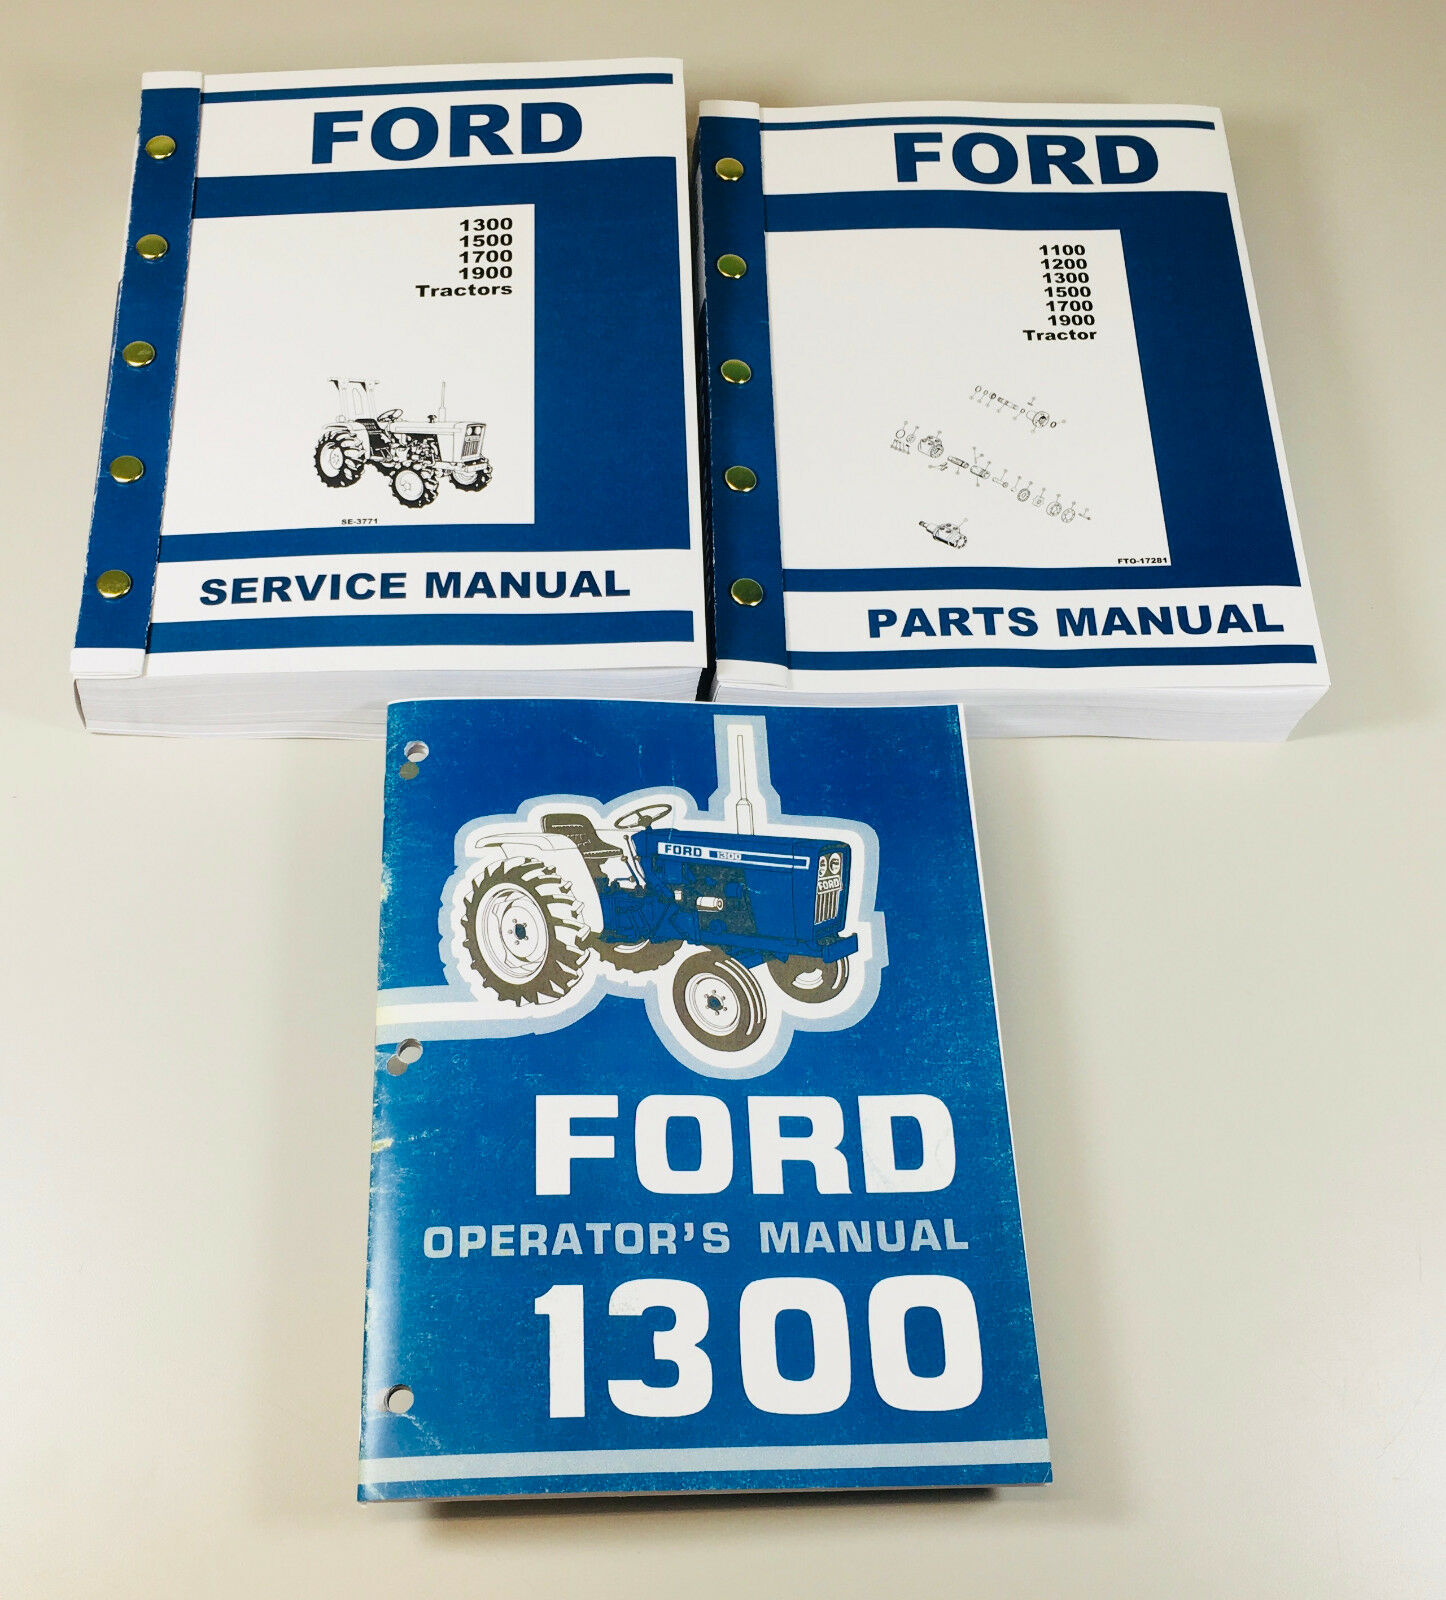 Ford 1300 Tractor Service Parts Operators Manual Owners Repair Catalog Set  1 of 12FREE Shipping ...